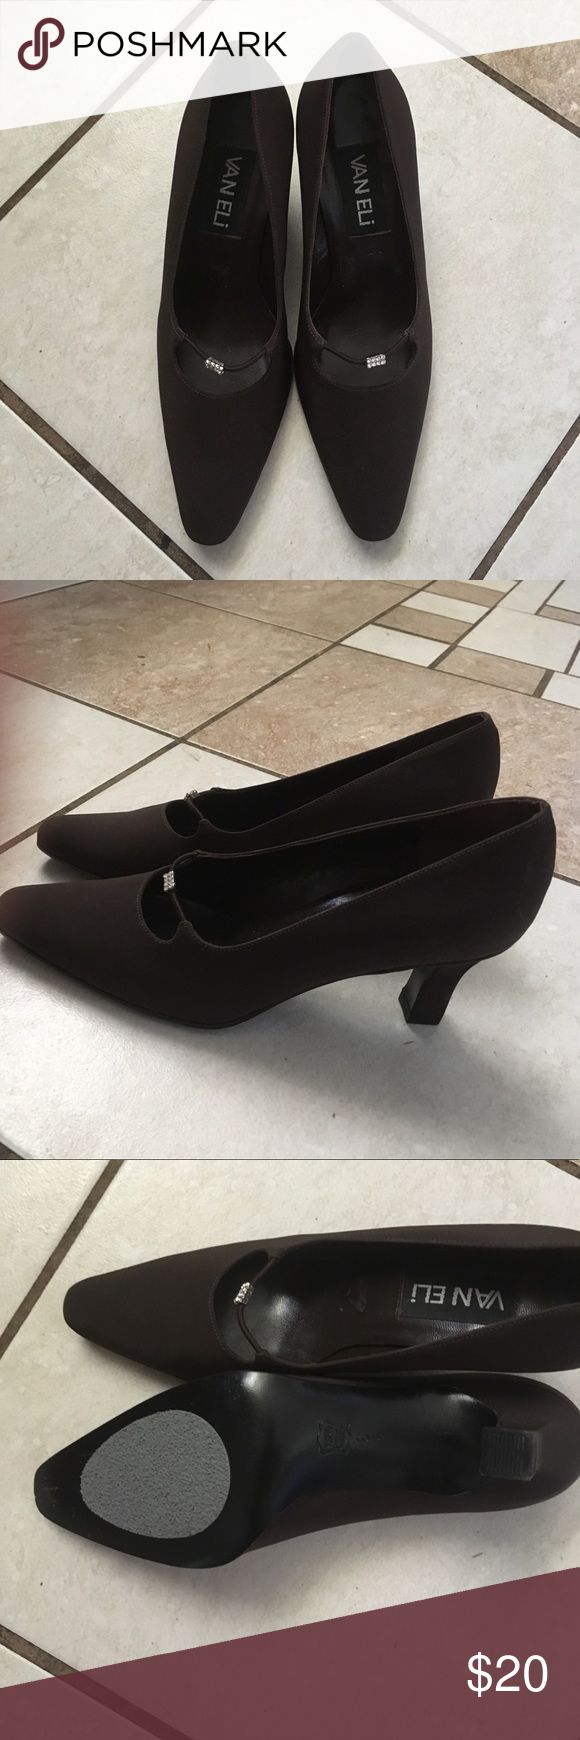 Dark brown shoes Beautiful shoes in excellent condition. Like new. Size 6M Vaneli Shoes